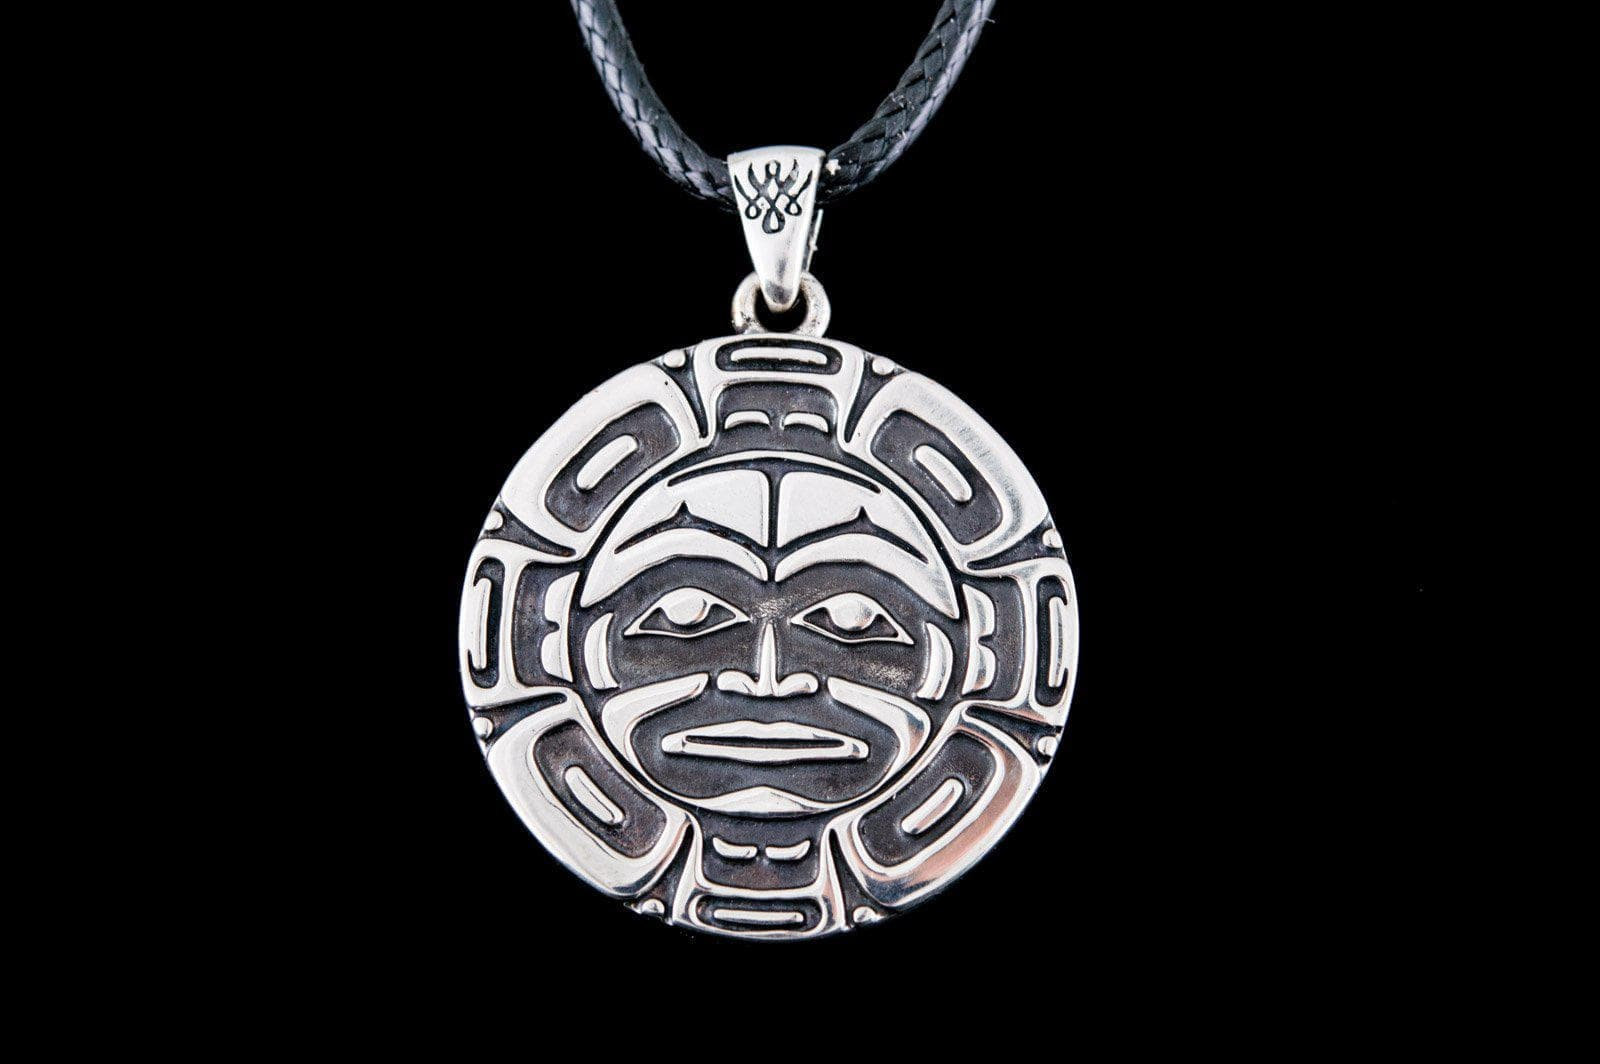 Pendants & Necklaces Aztec Sun God Sterling Silver Handcrafted Pendant Ancient Treasures Ancientreasures Viking Odin Thor Mjolnir Celtic Ancient Egypt Norse Norse Mythology